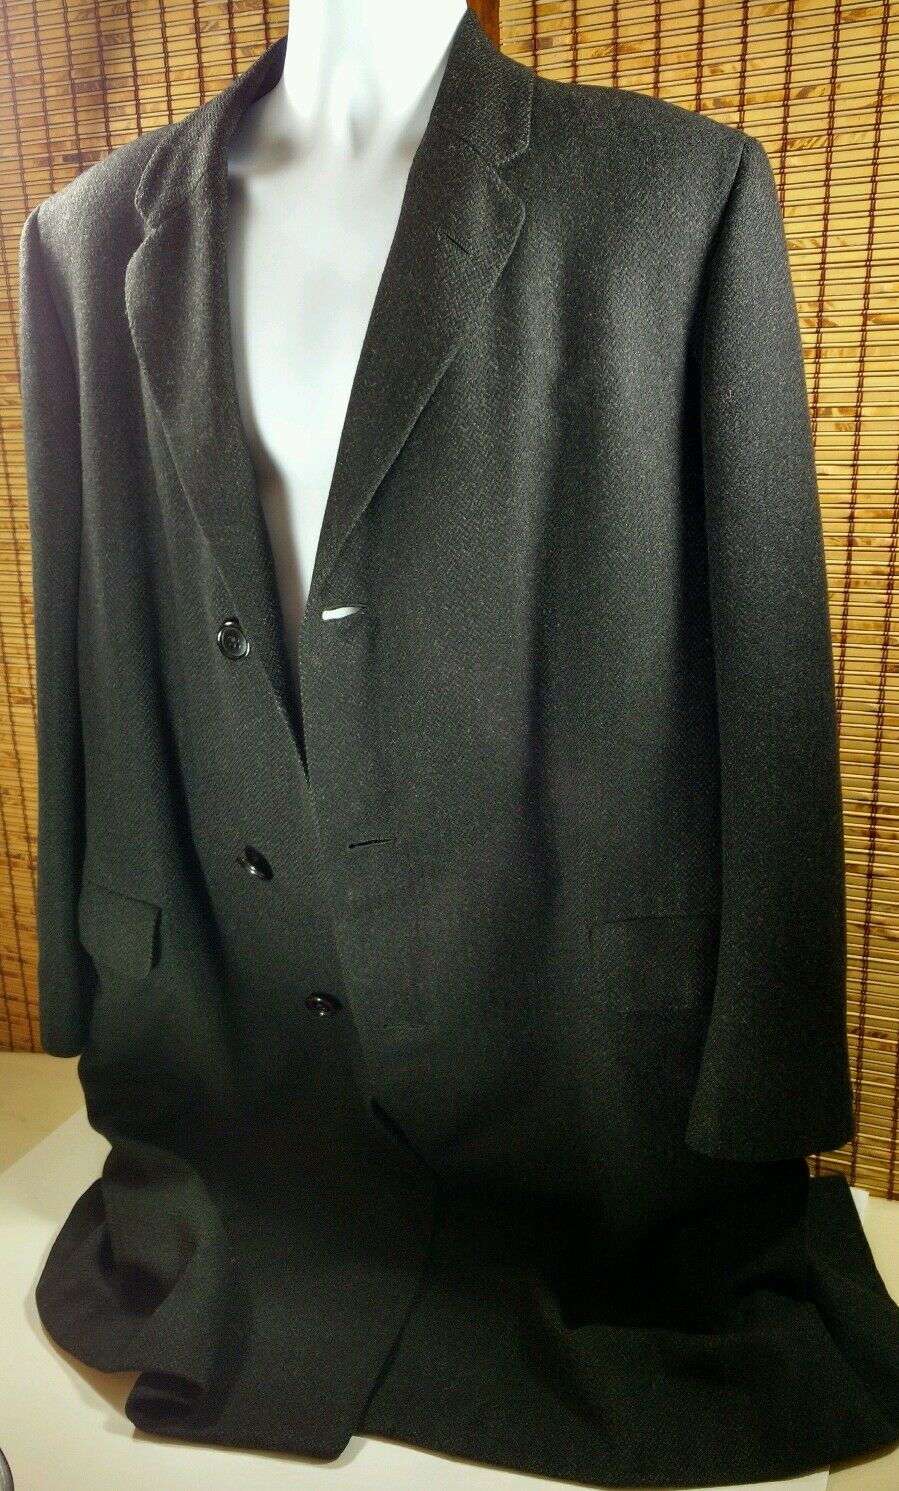 Royal Patina Mens Overcoat Top Trench Coat Saddle Cloth Charcoal 3 Btn Front 48